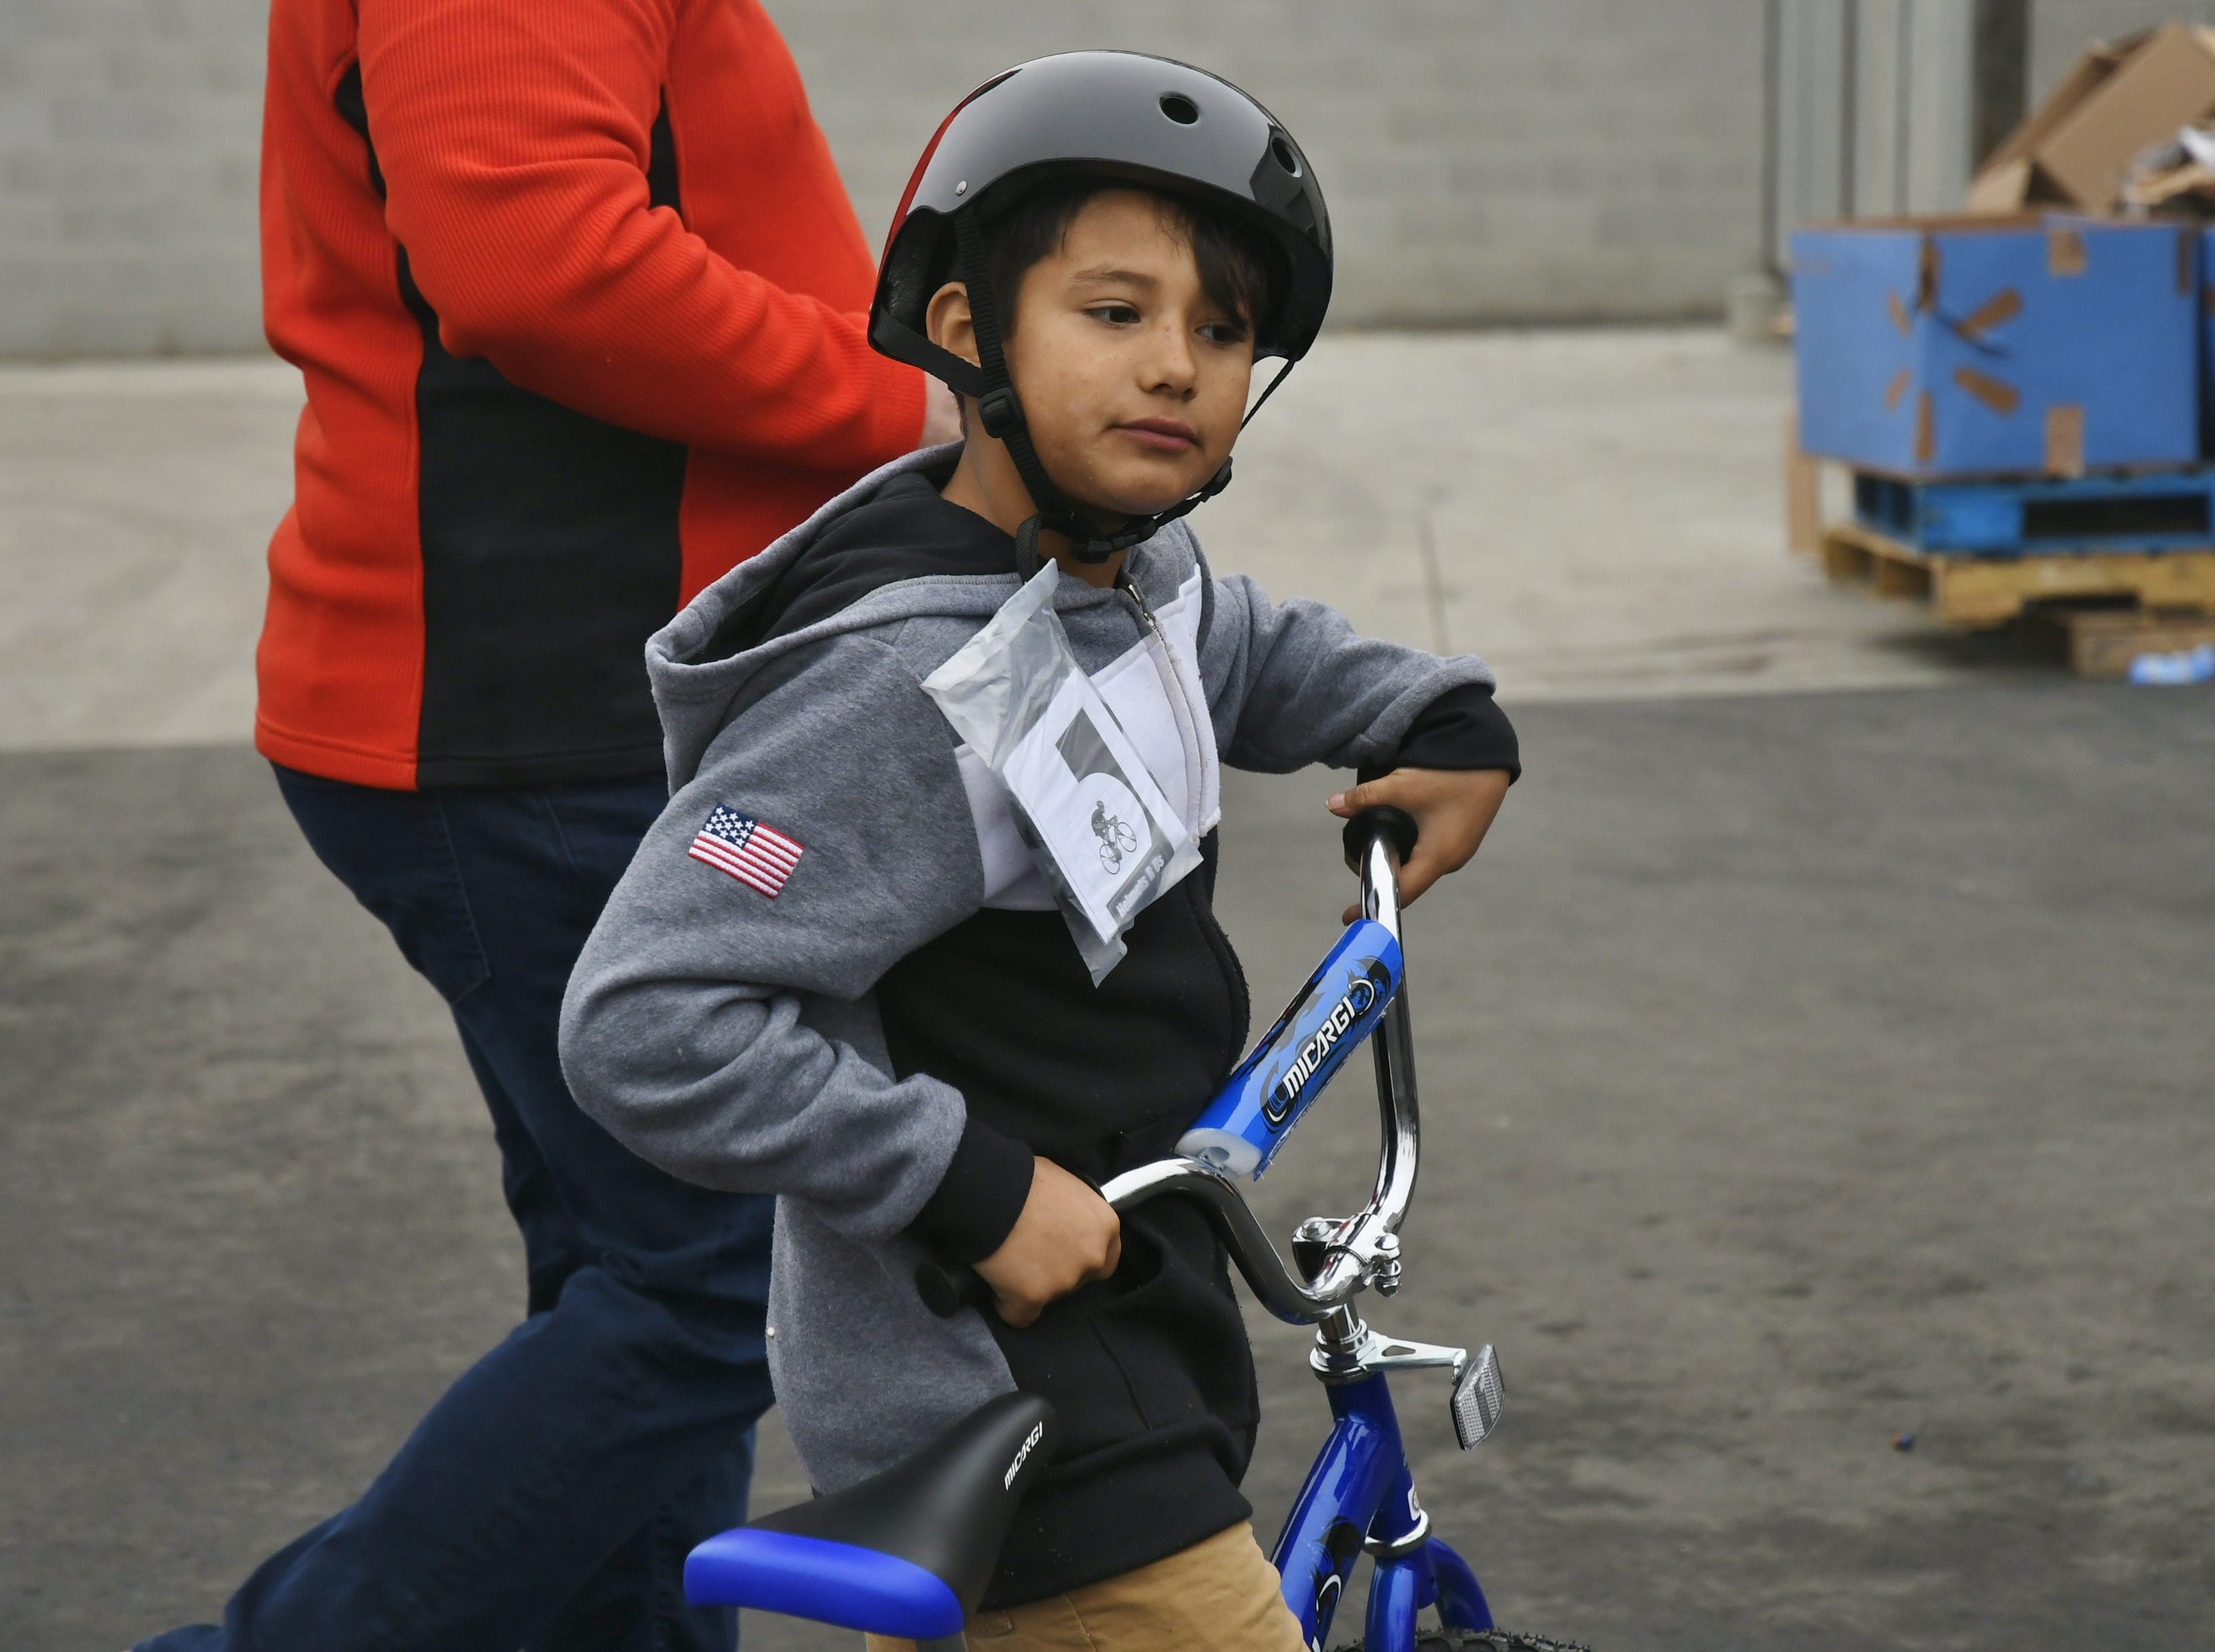 Jesus Martinez was one of 200 children to receive a bike during Visalia Emergency Aid Council's annual bike giveaway on Saturday, Dec. 22.